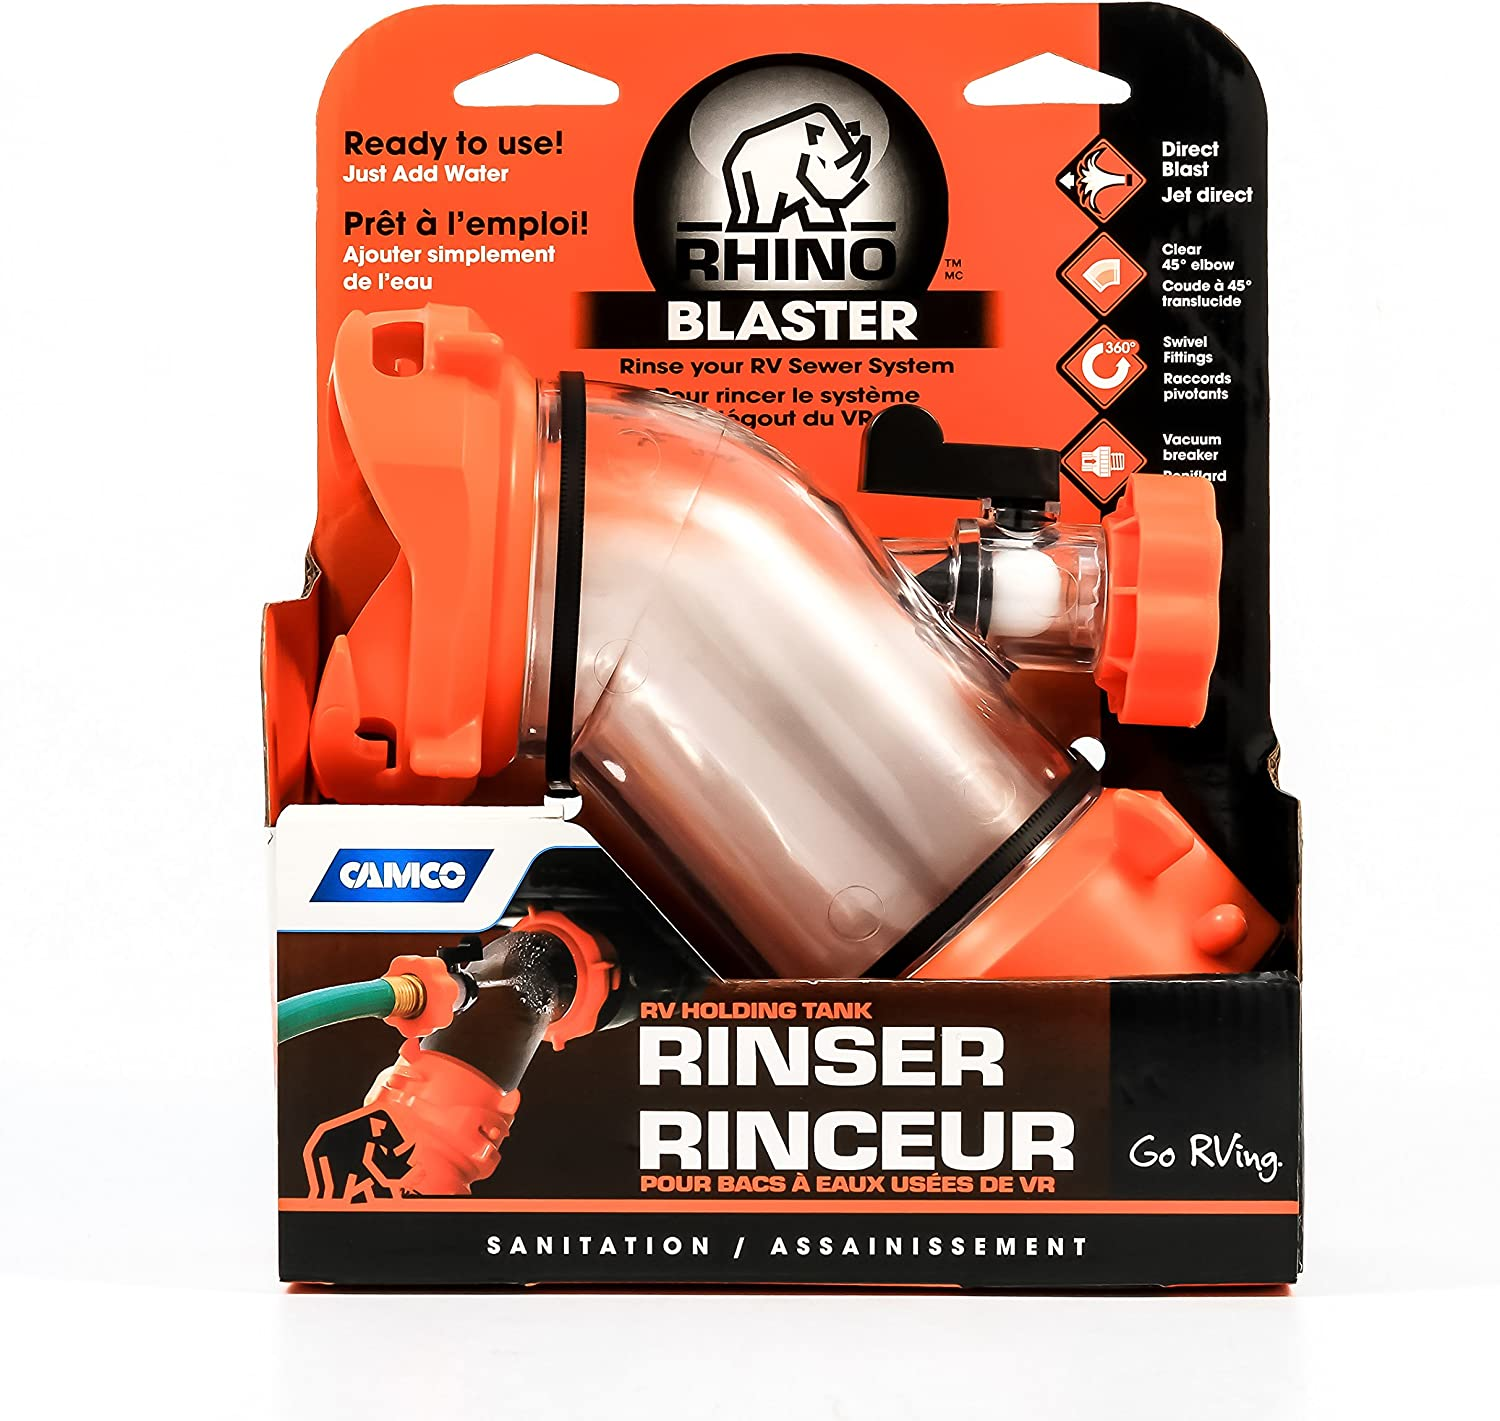 Amazon Com Camco Rhino Blaster Sewer Tank Rinser Securely Attaches To Your Rv Sewer Outlet To Jet Rinse Out Residue Black Flow Preventer Prevents Hose Contamination 39080 Automotive